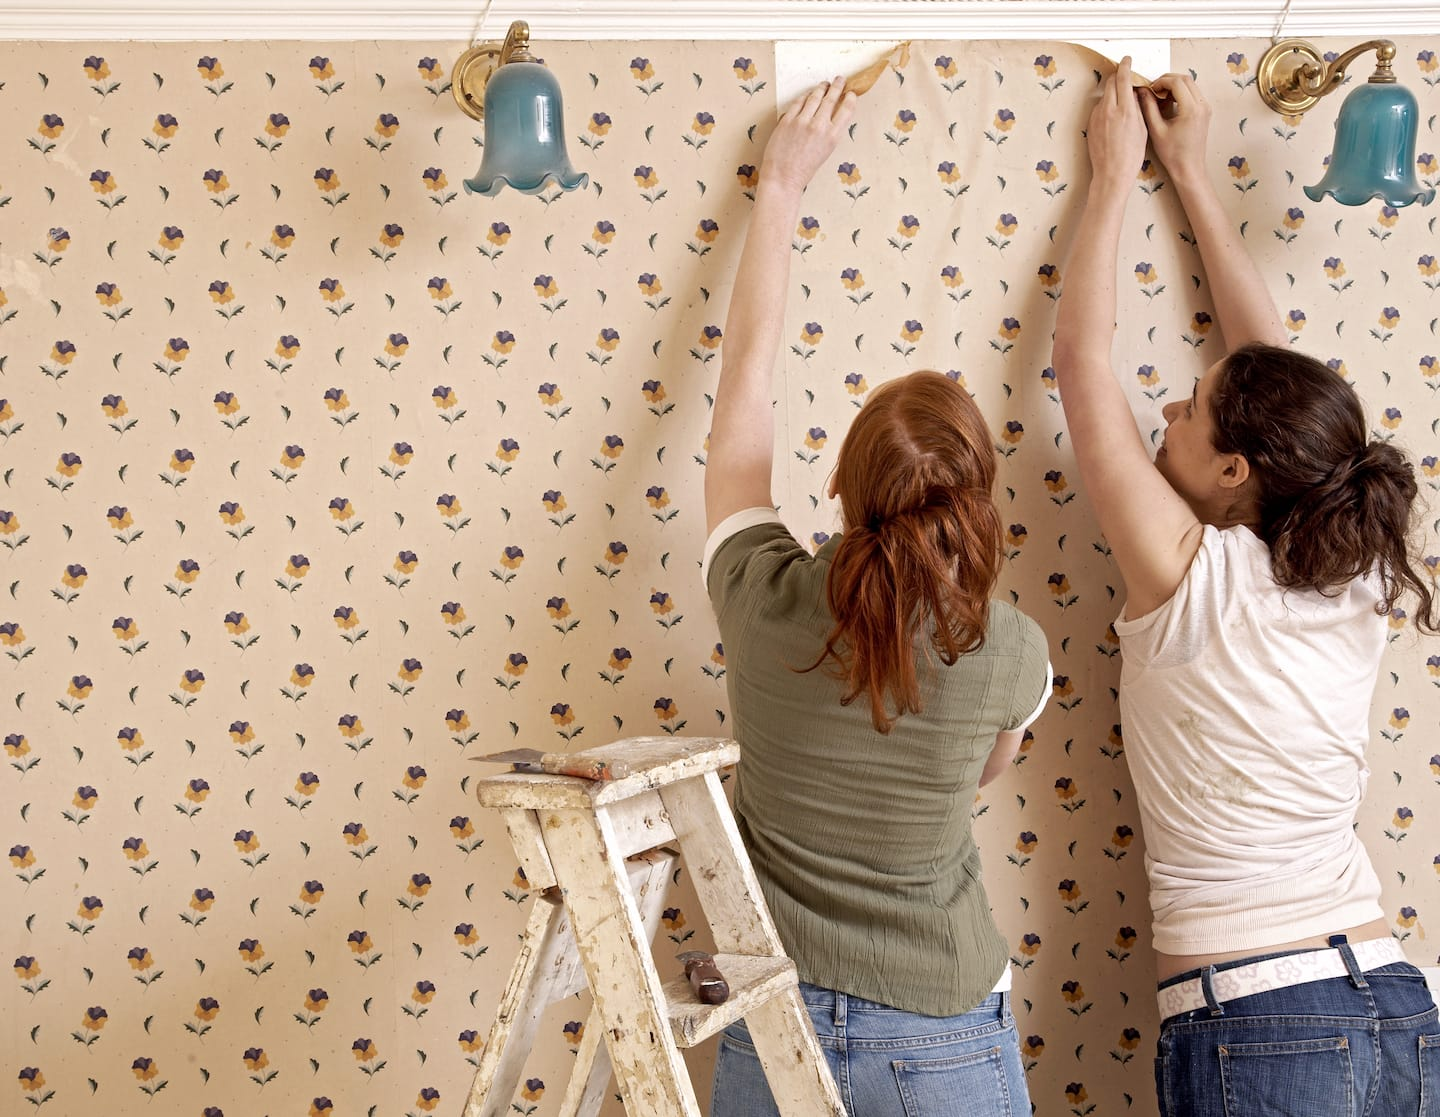 4 easy steps to remove wallpaper - Wall Paper Remover